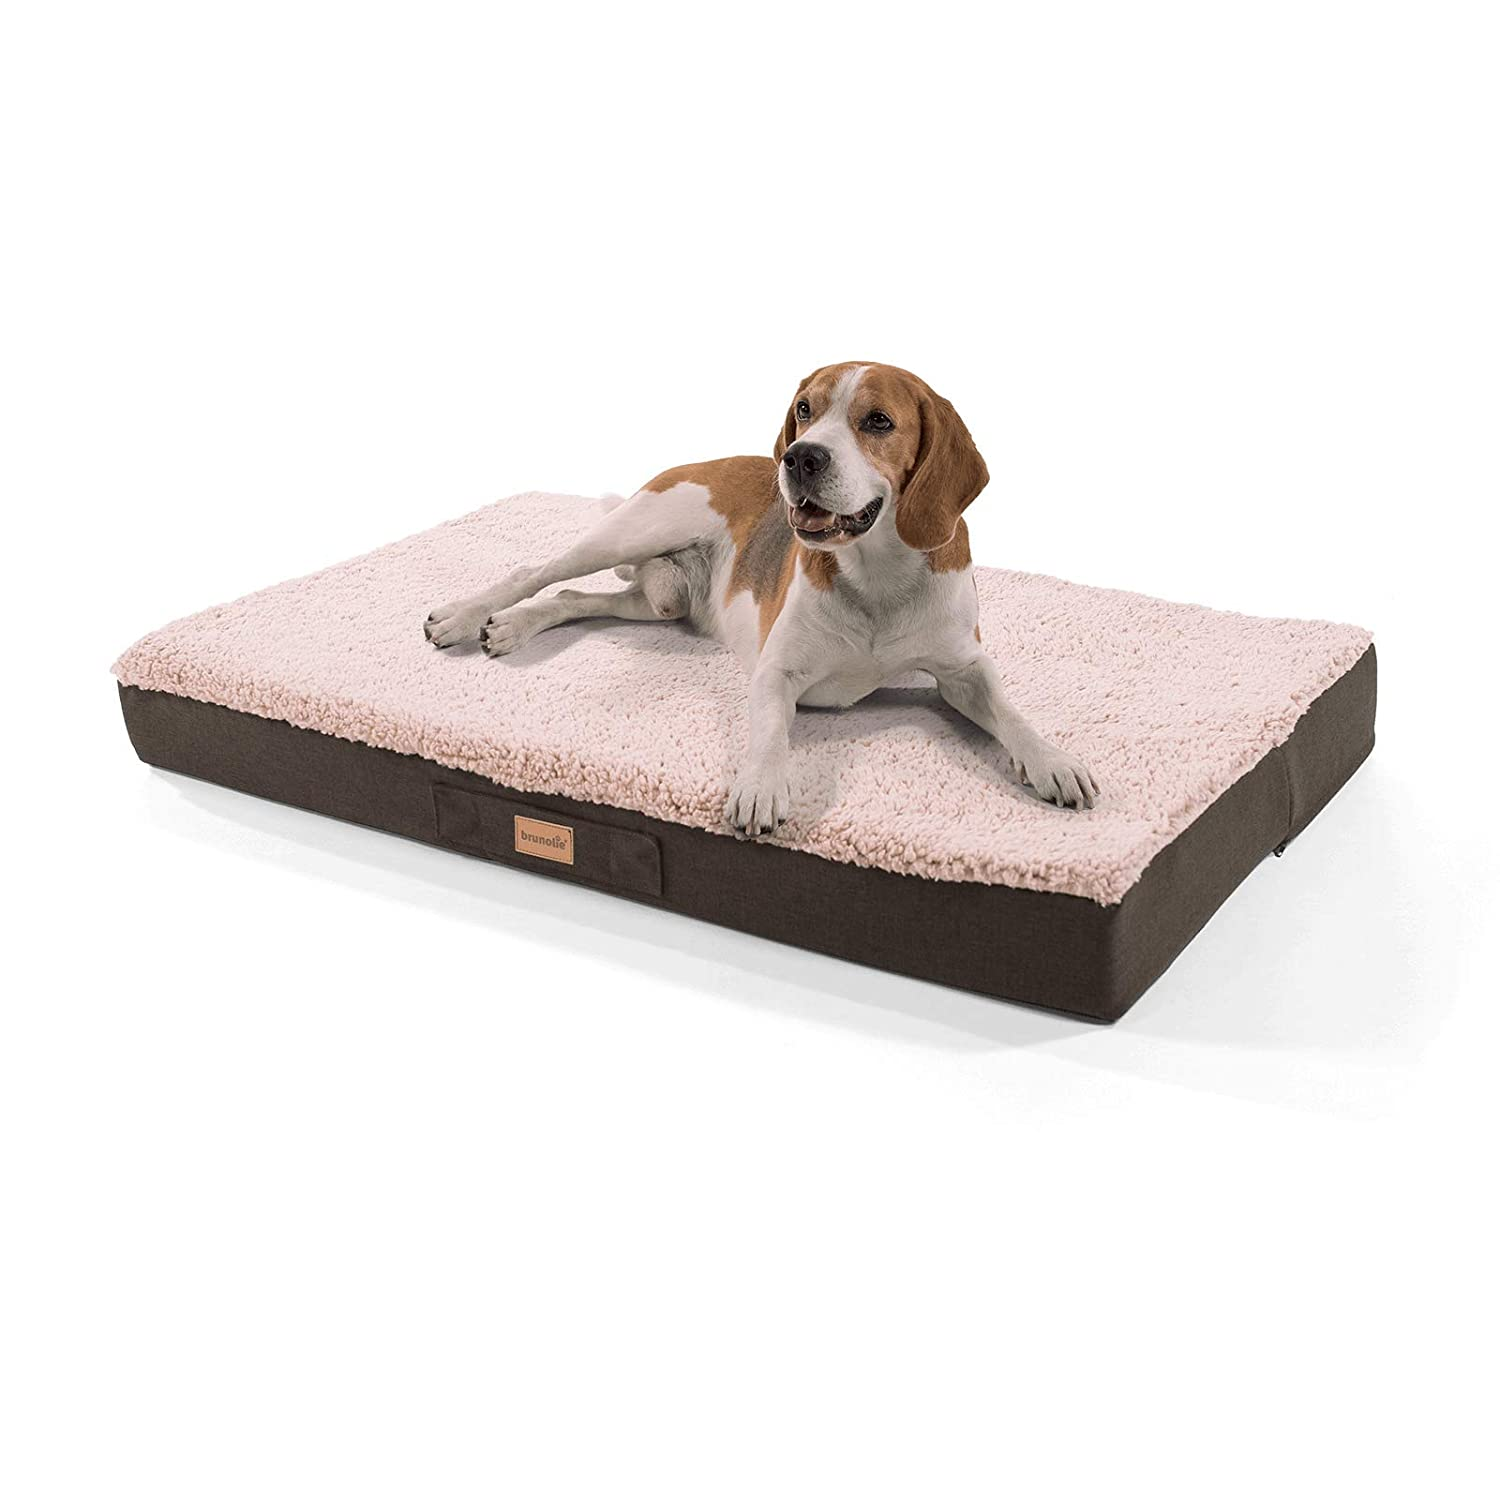 Beige large 100 x 65 cmbrunolie  Balu small dog mat in grey – orthopaedic, washable and nonslip dog bed with cuddly plush, size S